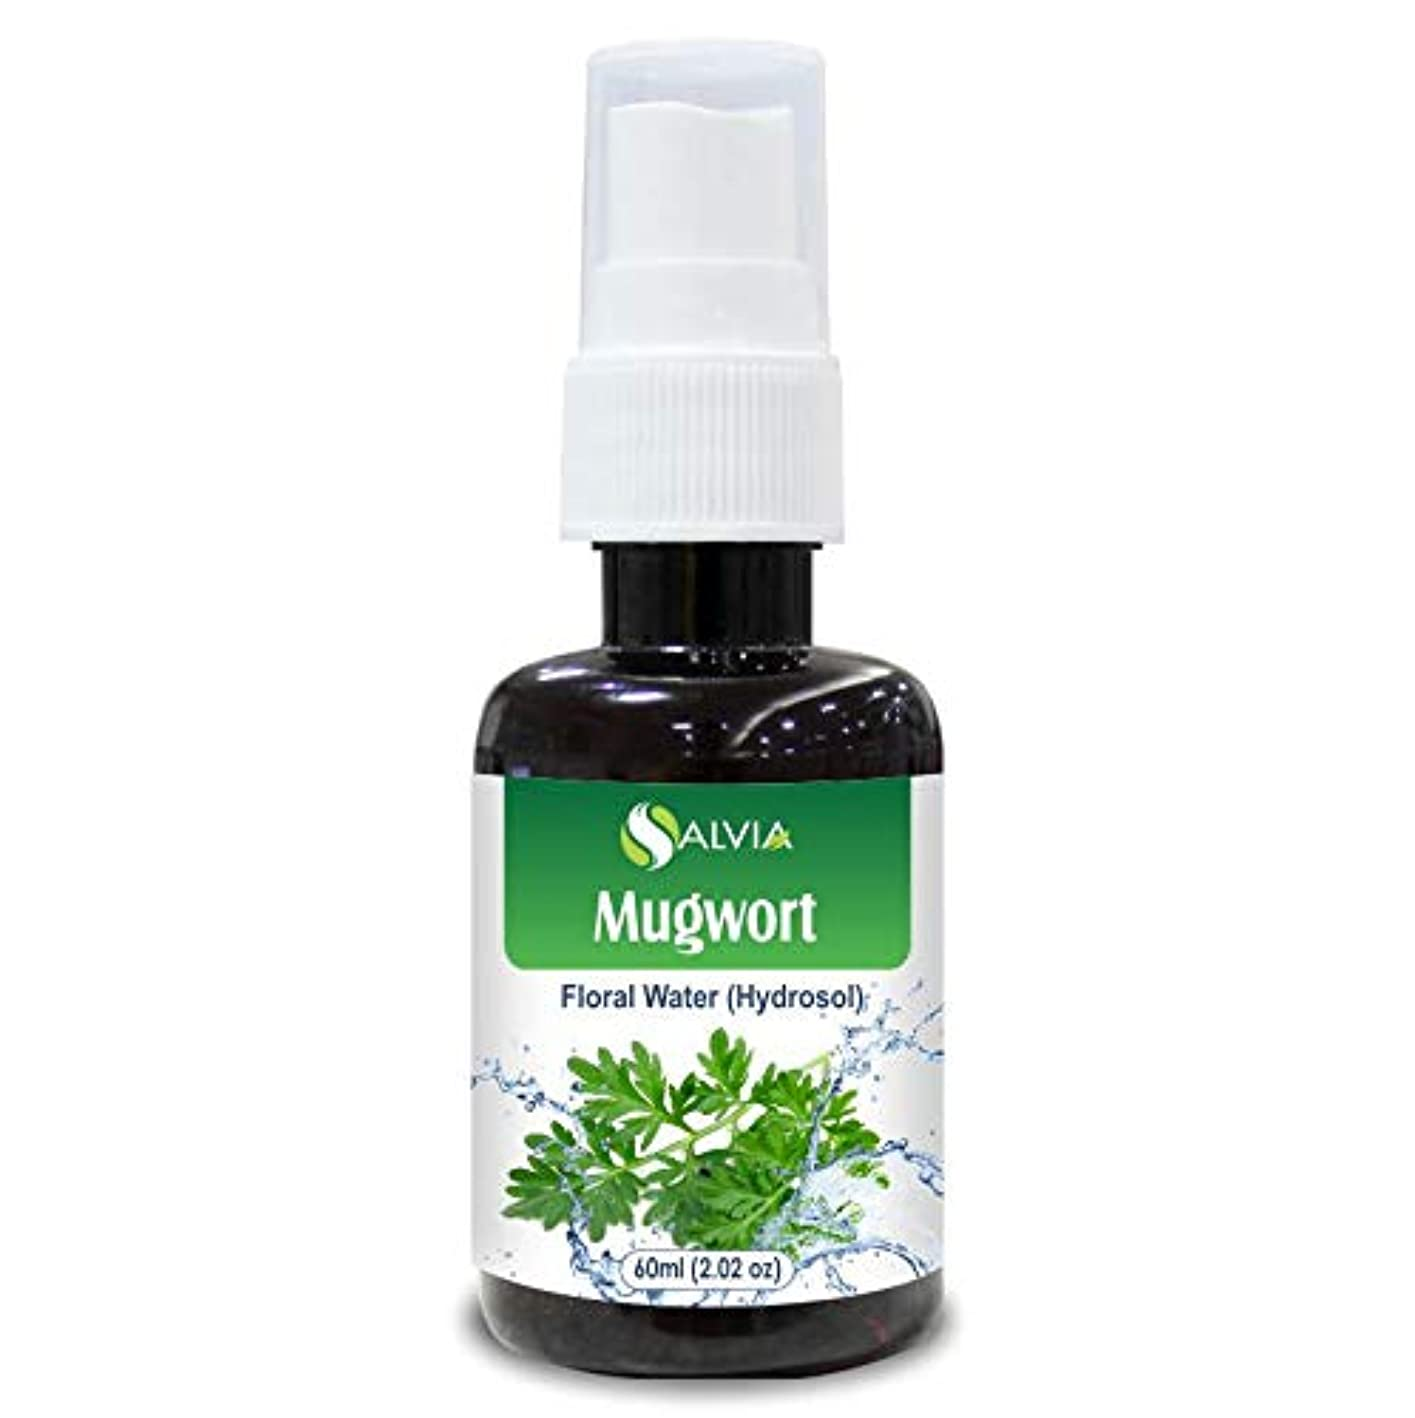 Mugwort Floral Water 60ml (Hydrosol) 100% Pure And Natural